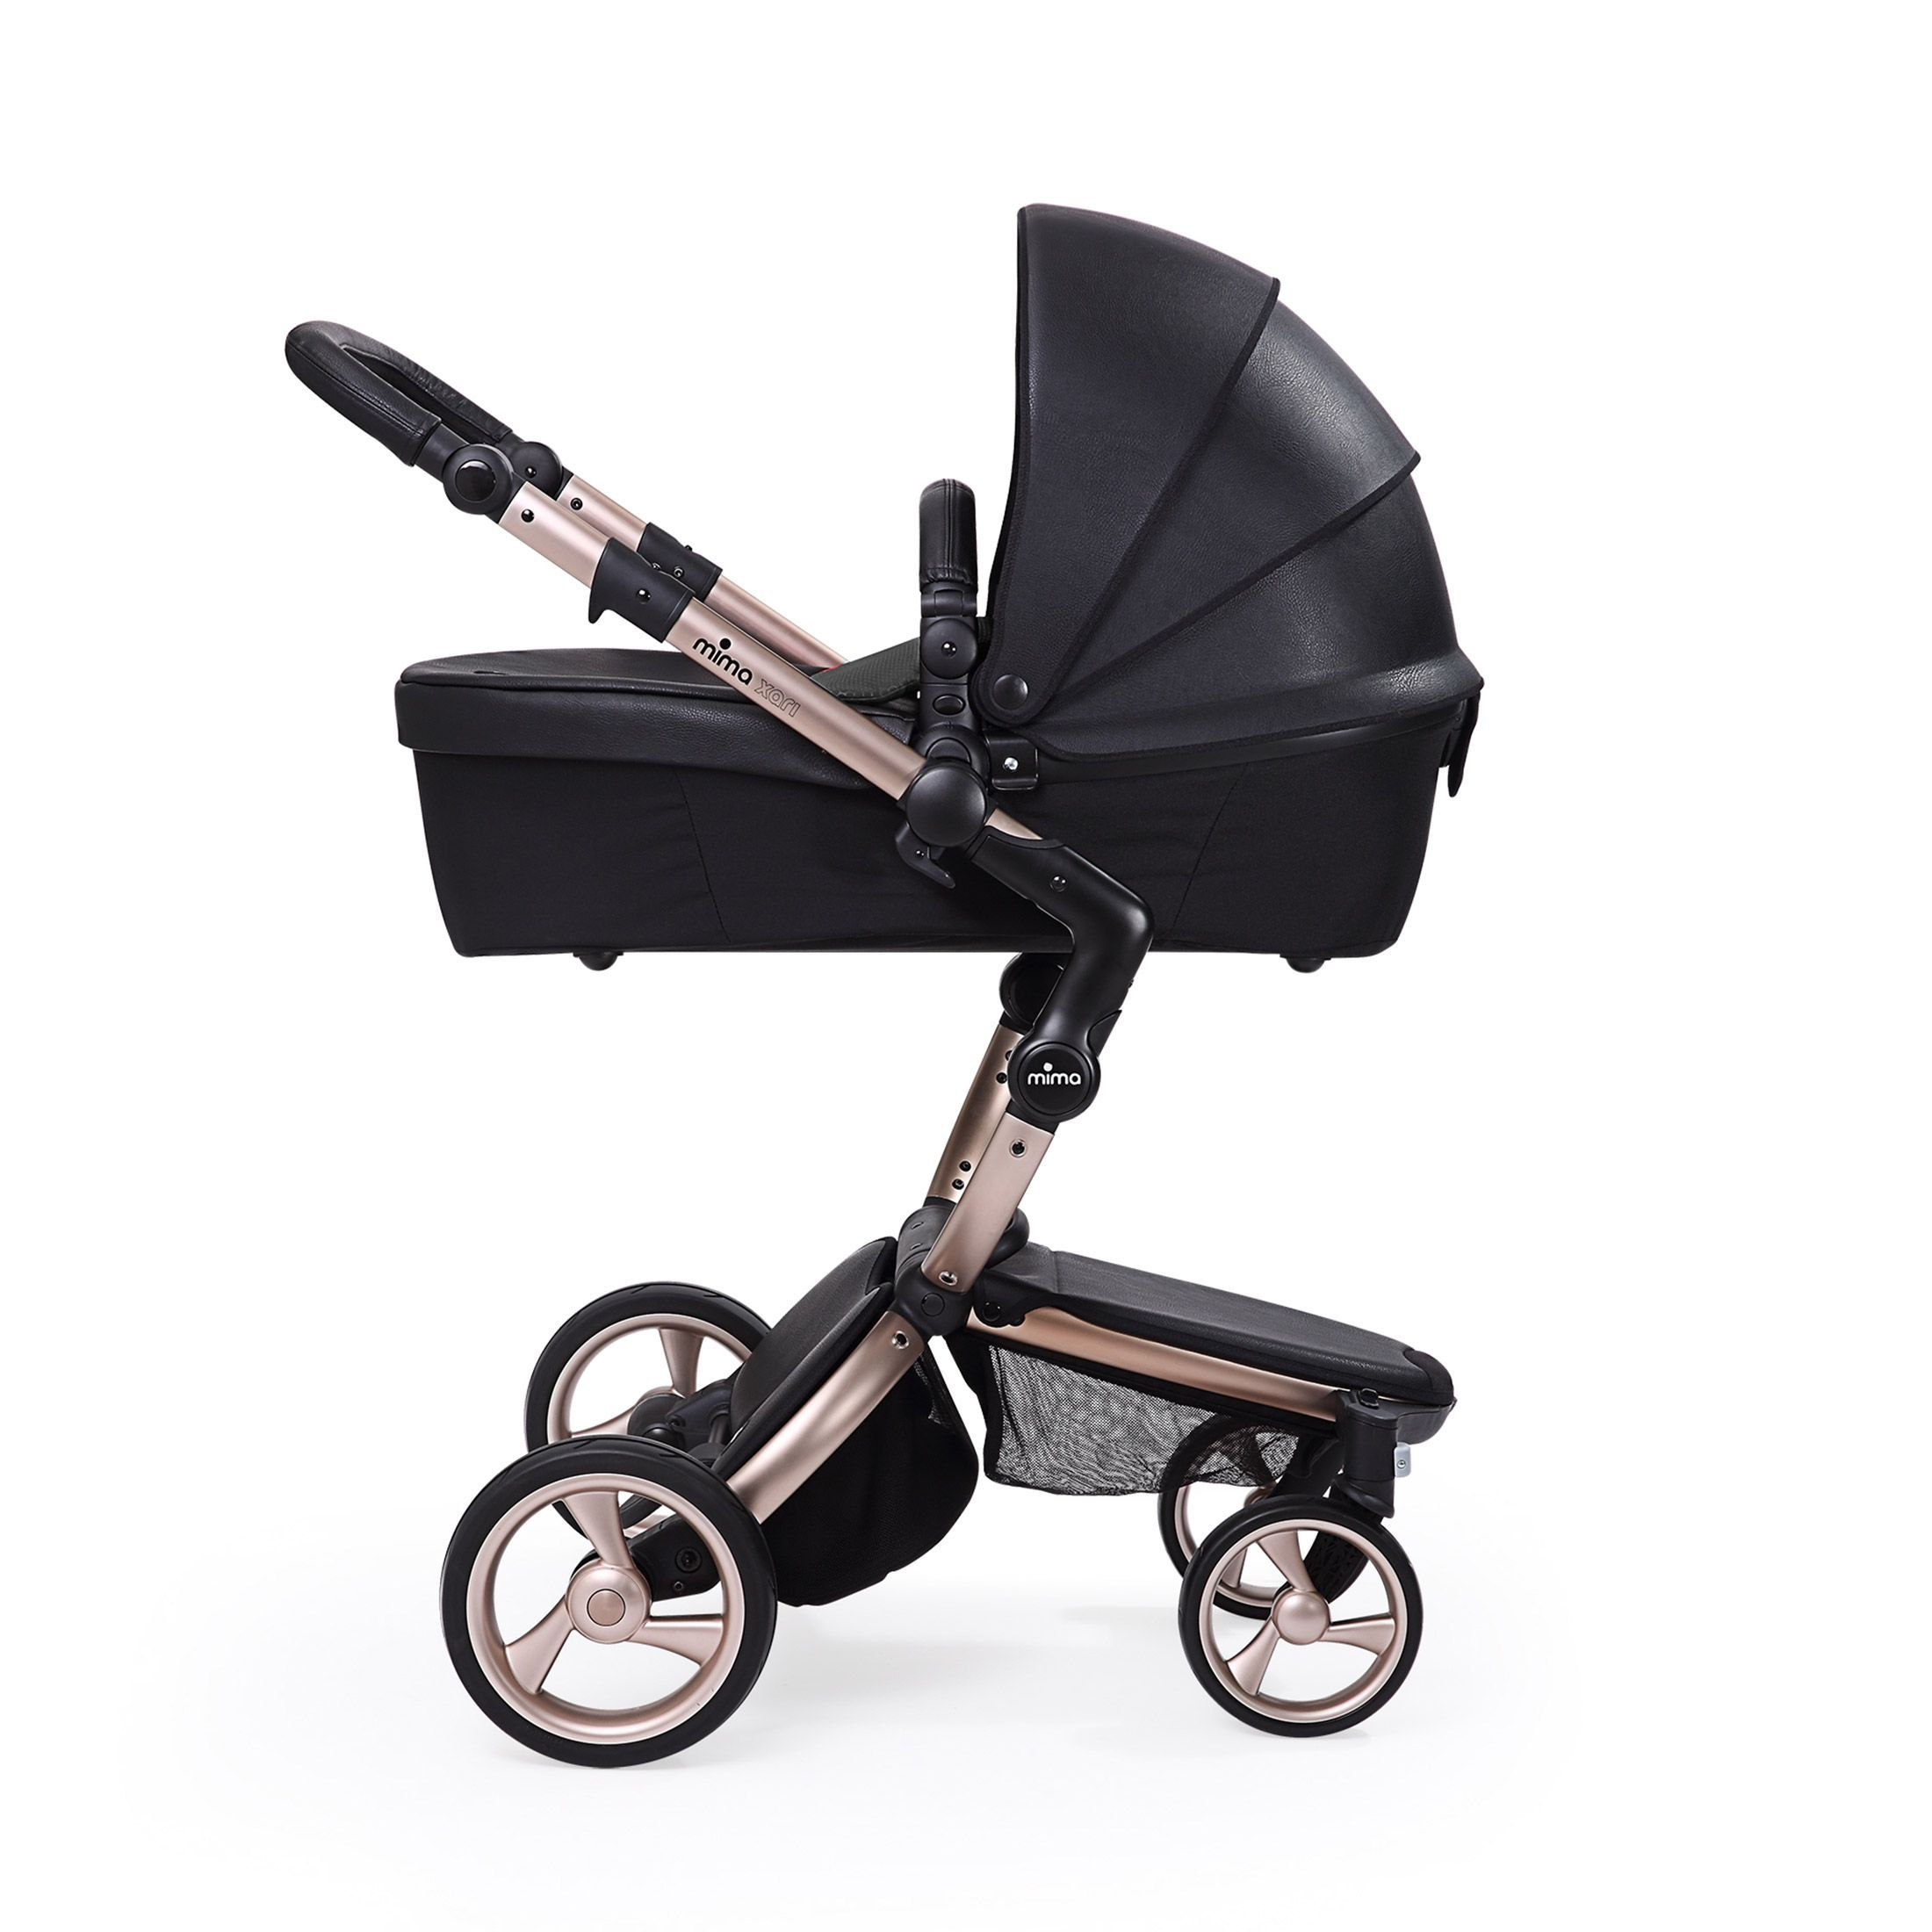 the rose gold Xari Stroller by Mima Int